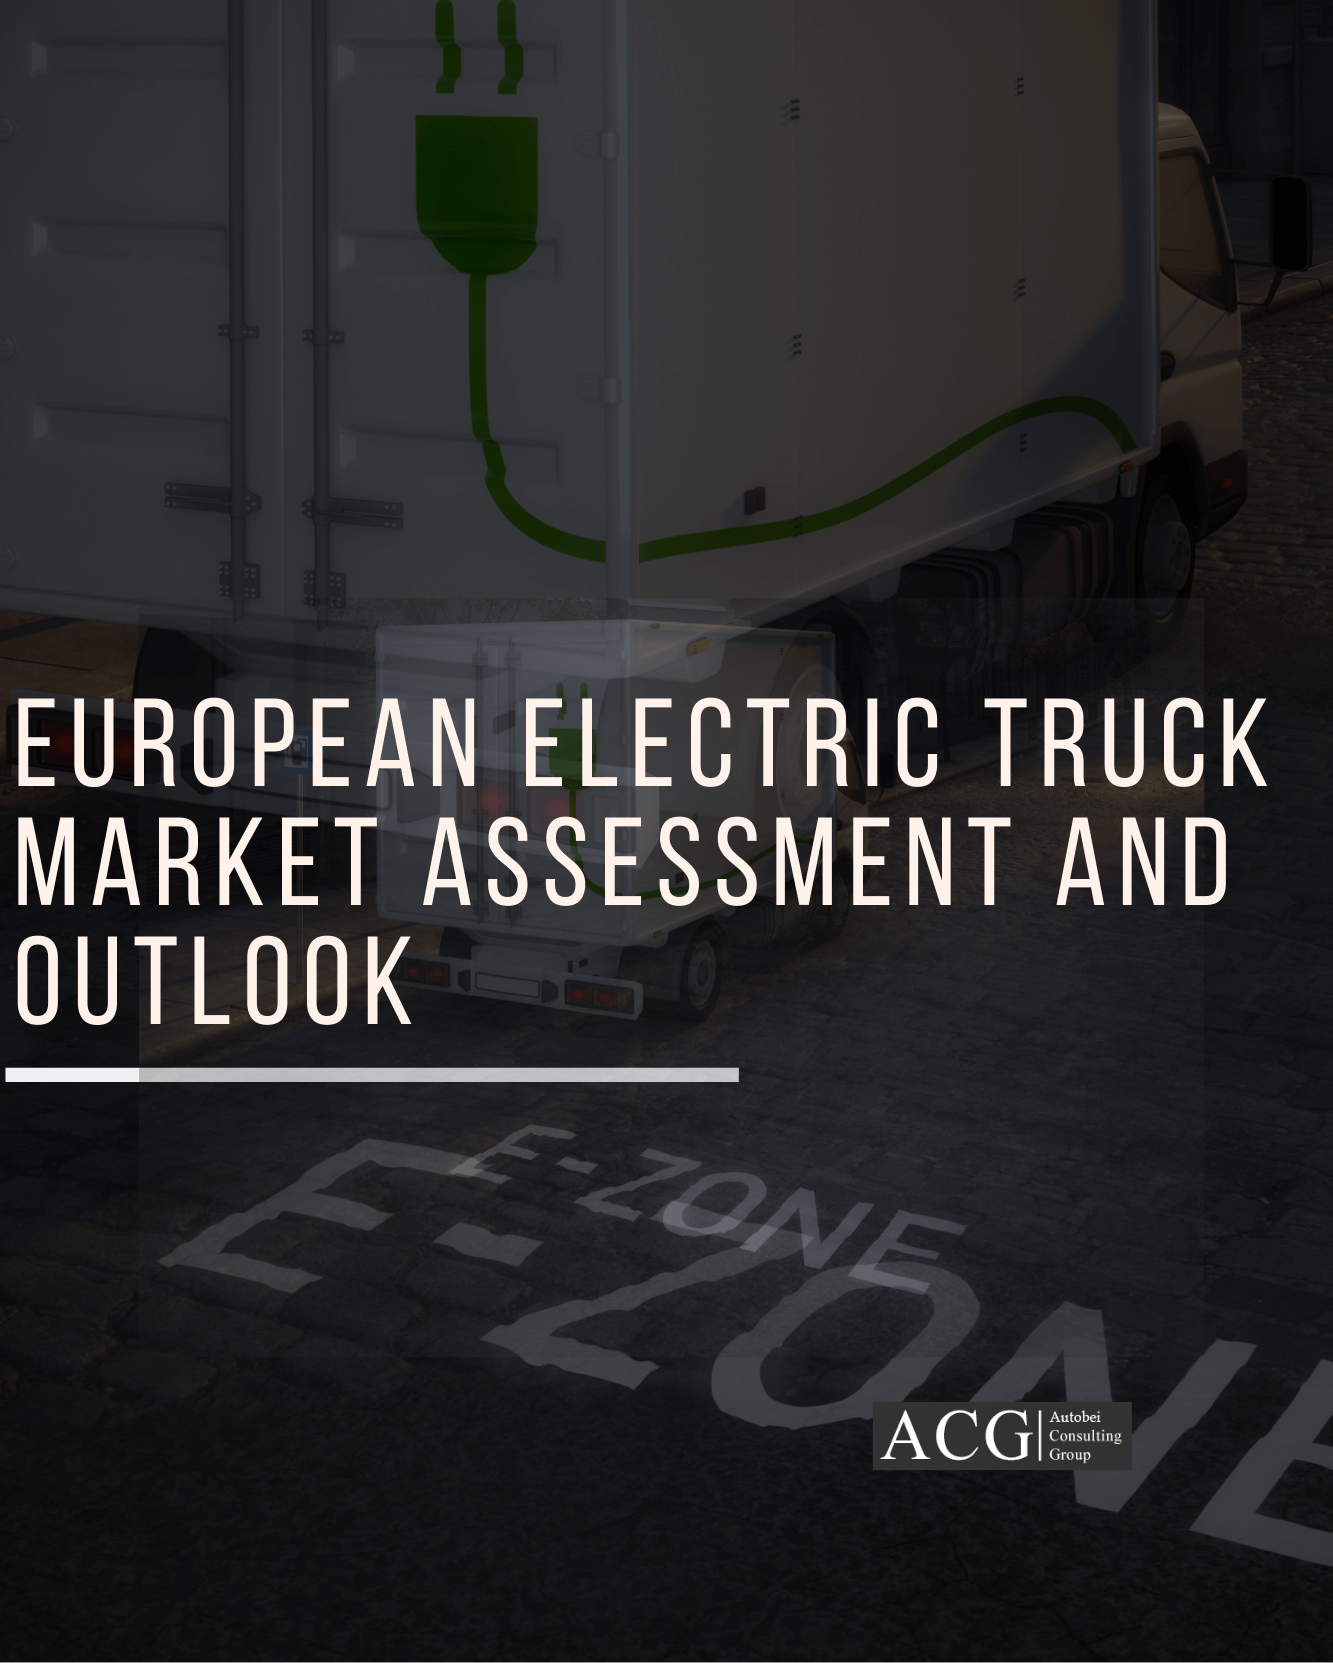 European Electric Truck Market Assessment and Outlook